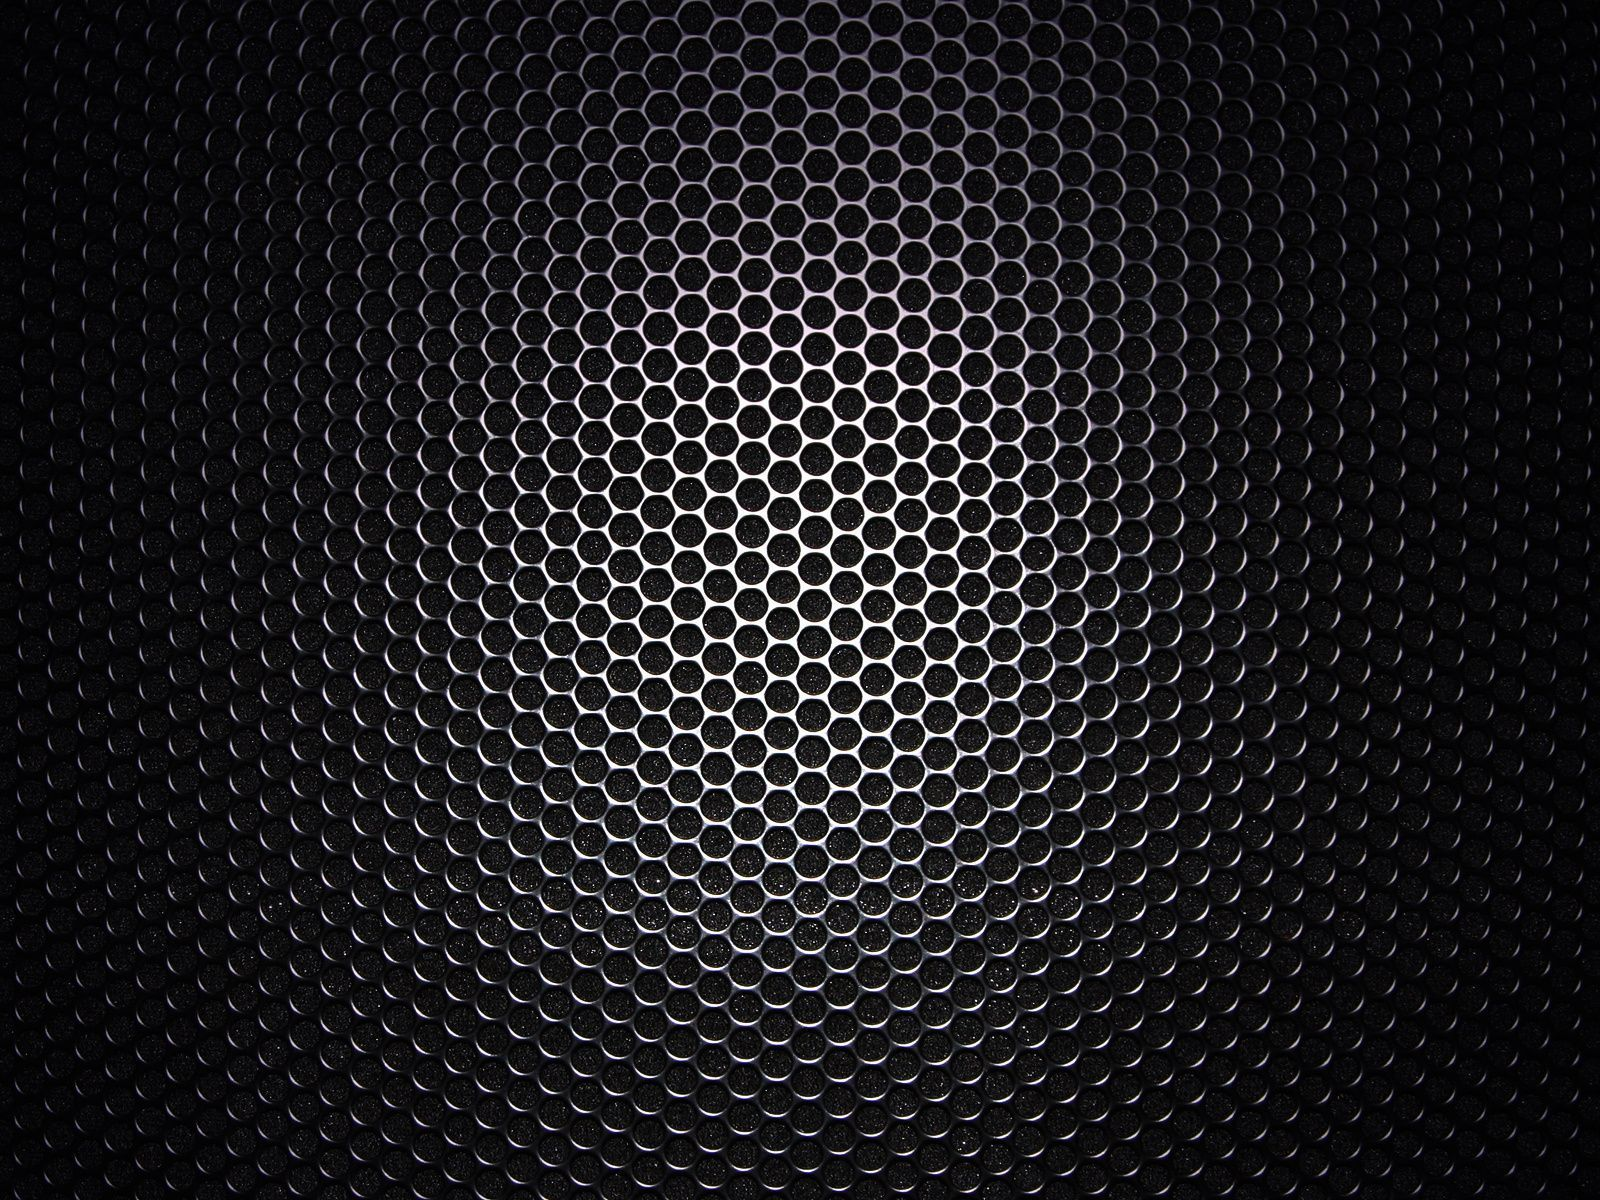 1600x1200 carbon fiber wallpaper hd | ... desktop wallpaper download texture ...